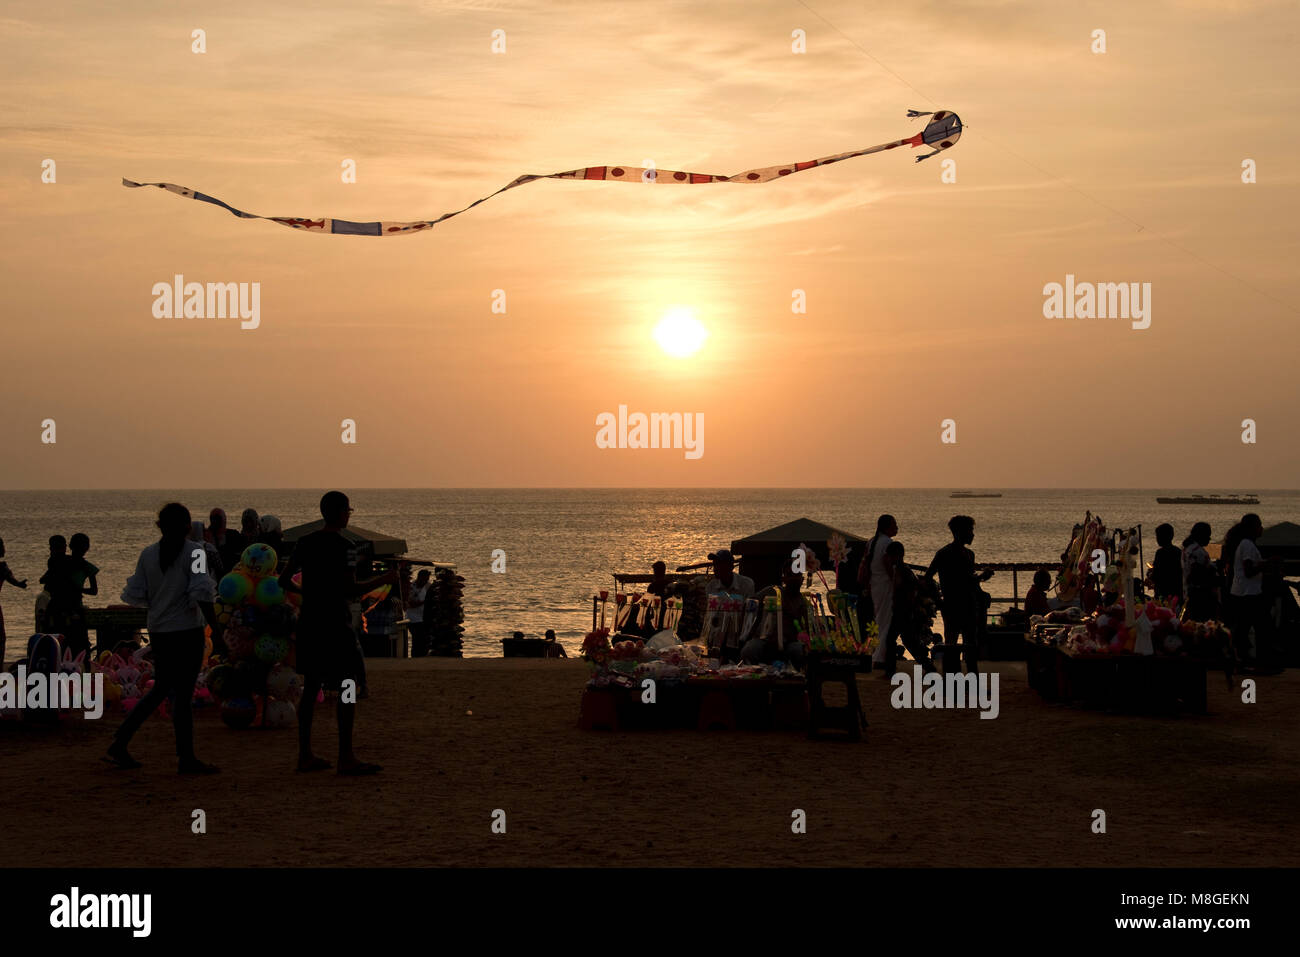 Local people and stall holders with a kite in the air on Galle Face Green at sunset - a popular spot in Colombo to spend time playing by the sea. Stock Photo